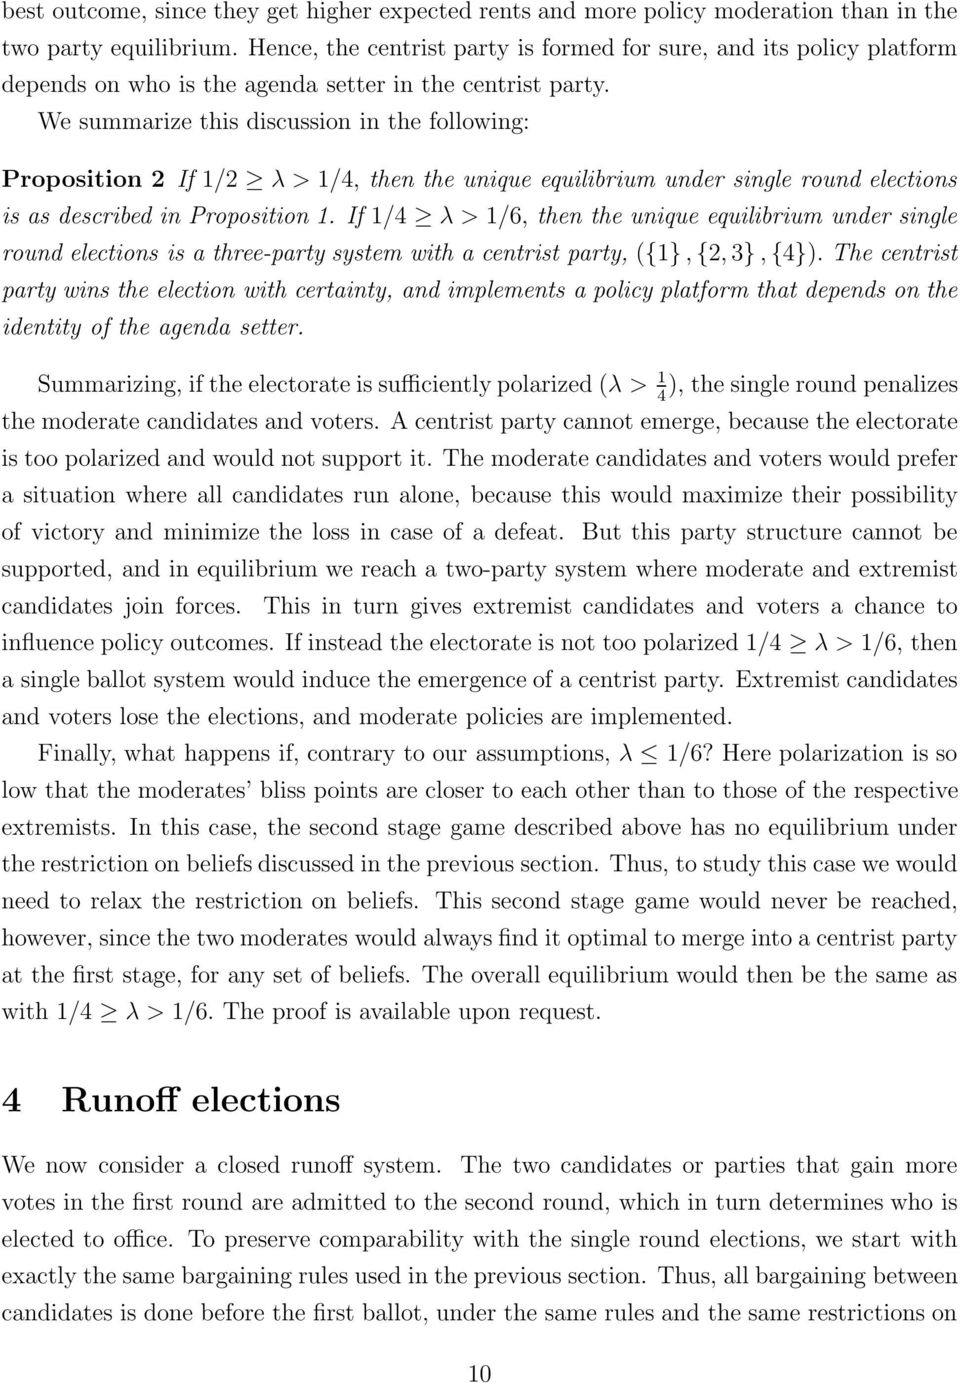 We summarize this discussion in the following: Proposition 2 If 1/2 λ > 1/4, then the unique equilibrium under single round elections is as described in Proposition 1.